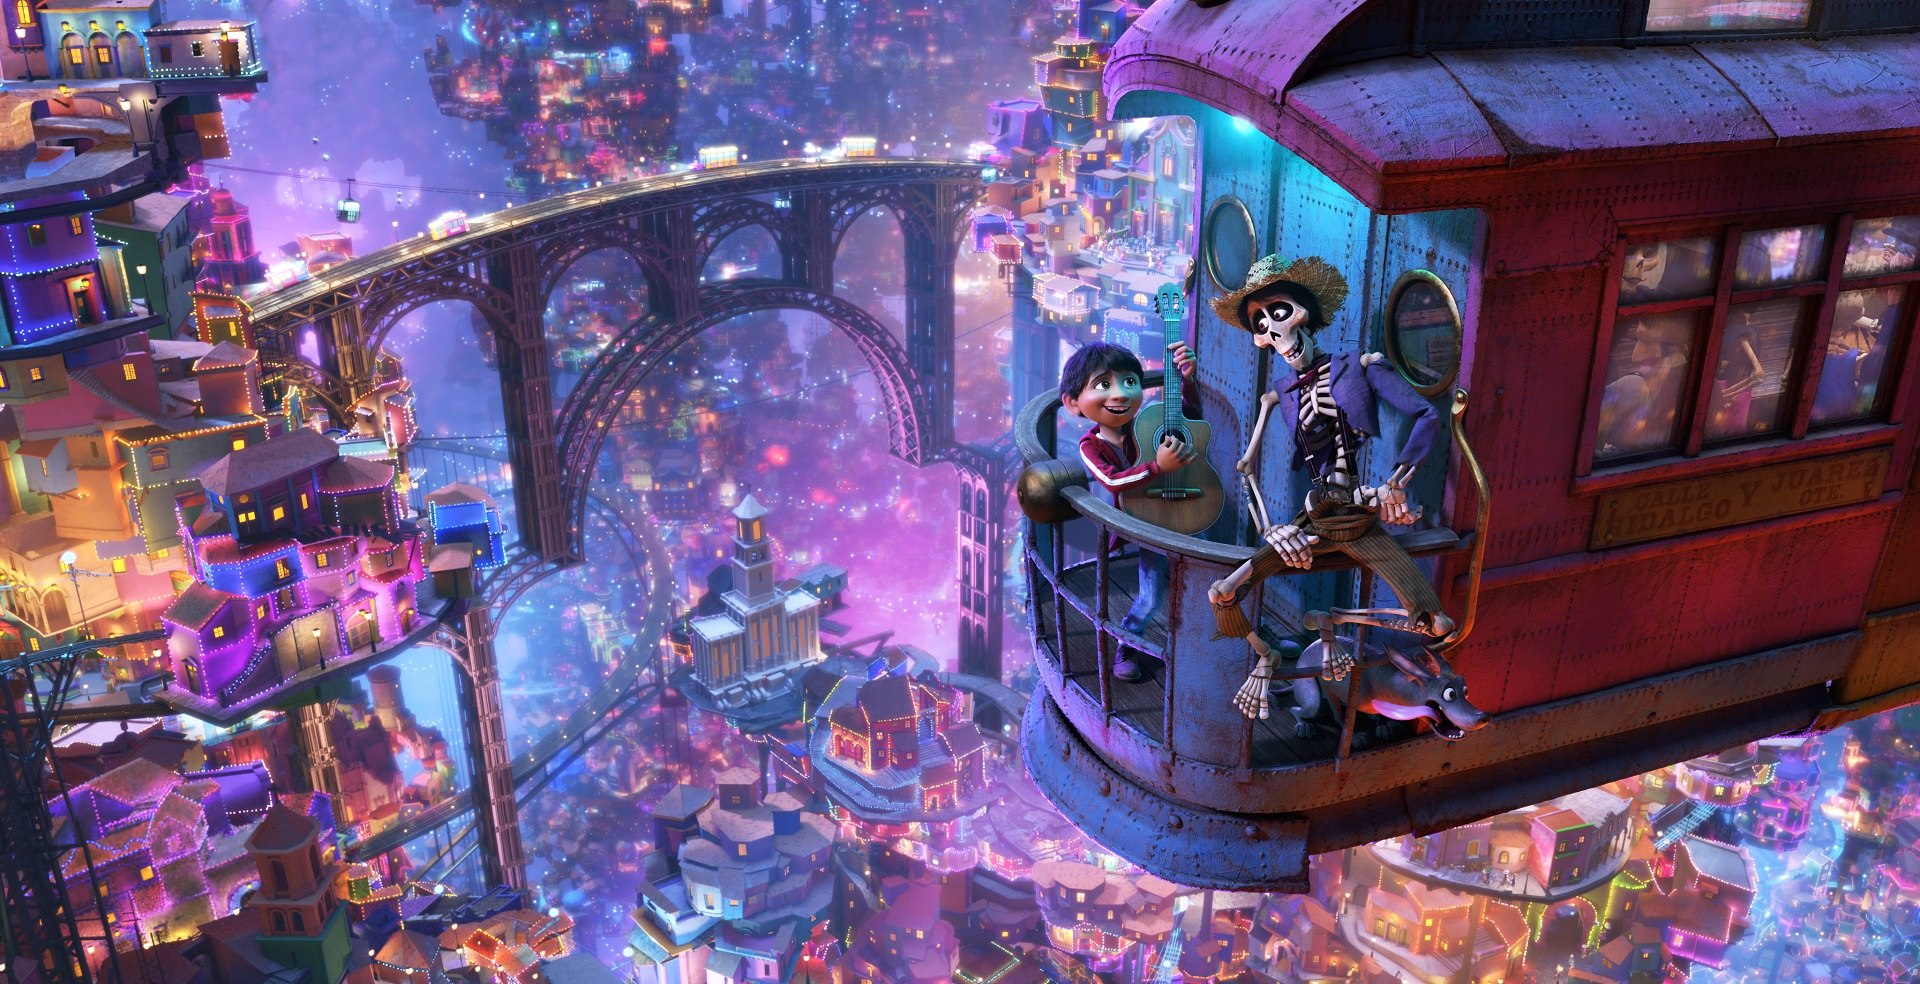 Nominations Announced for 45th Annie Awards | Animation